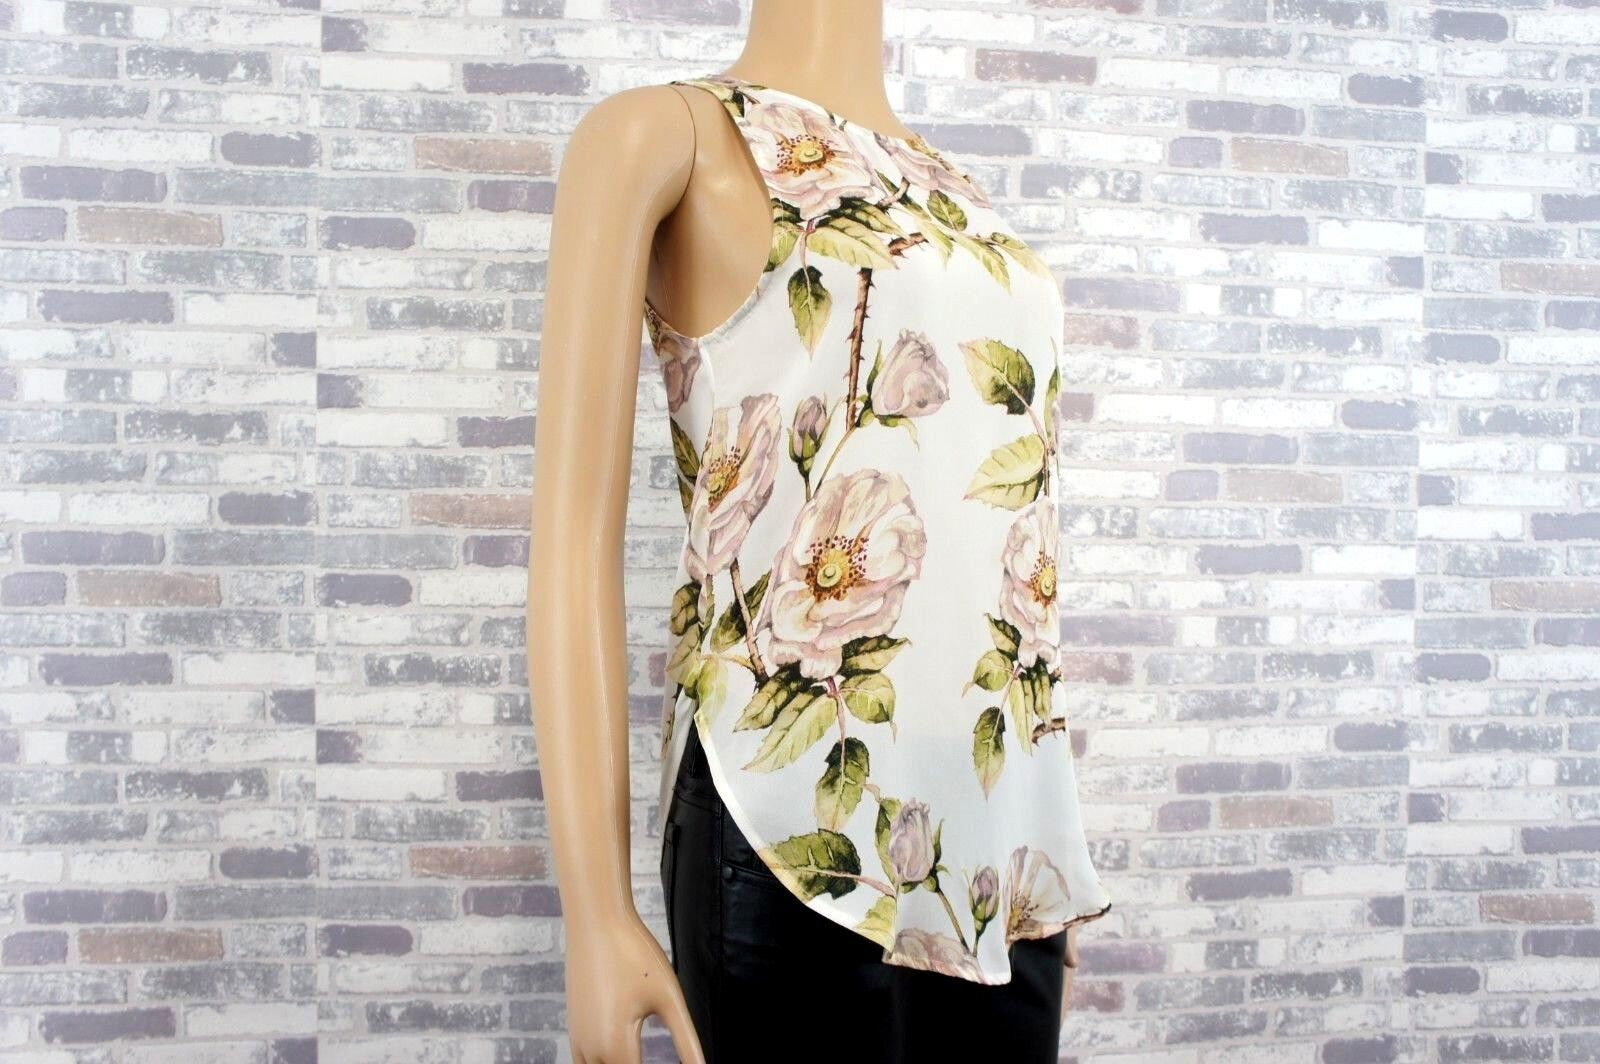 HAUTE HIPPIE   ZARTE HIGH FASHION DESIGNER SEIDE blueSE TOP   XS   NEUW